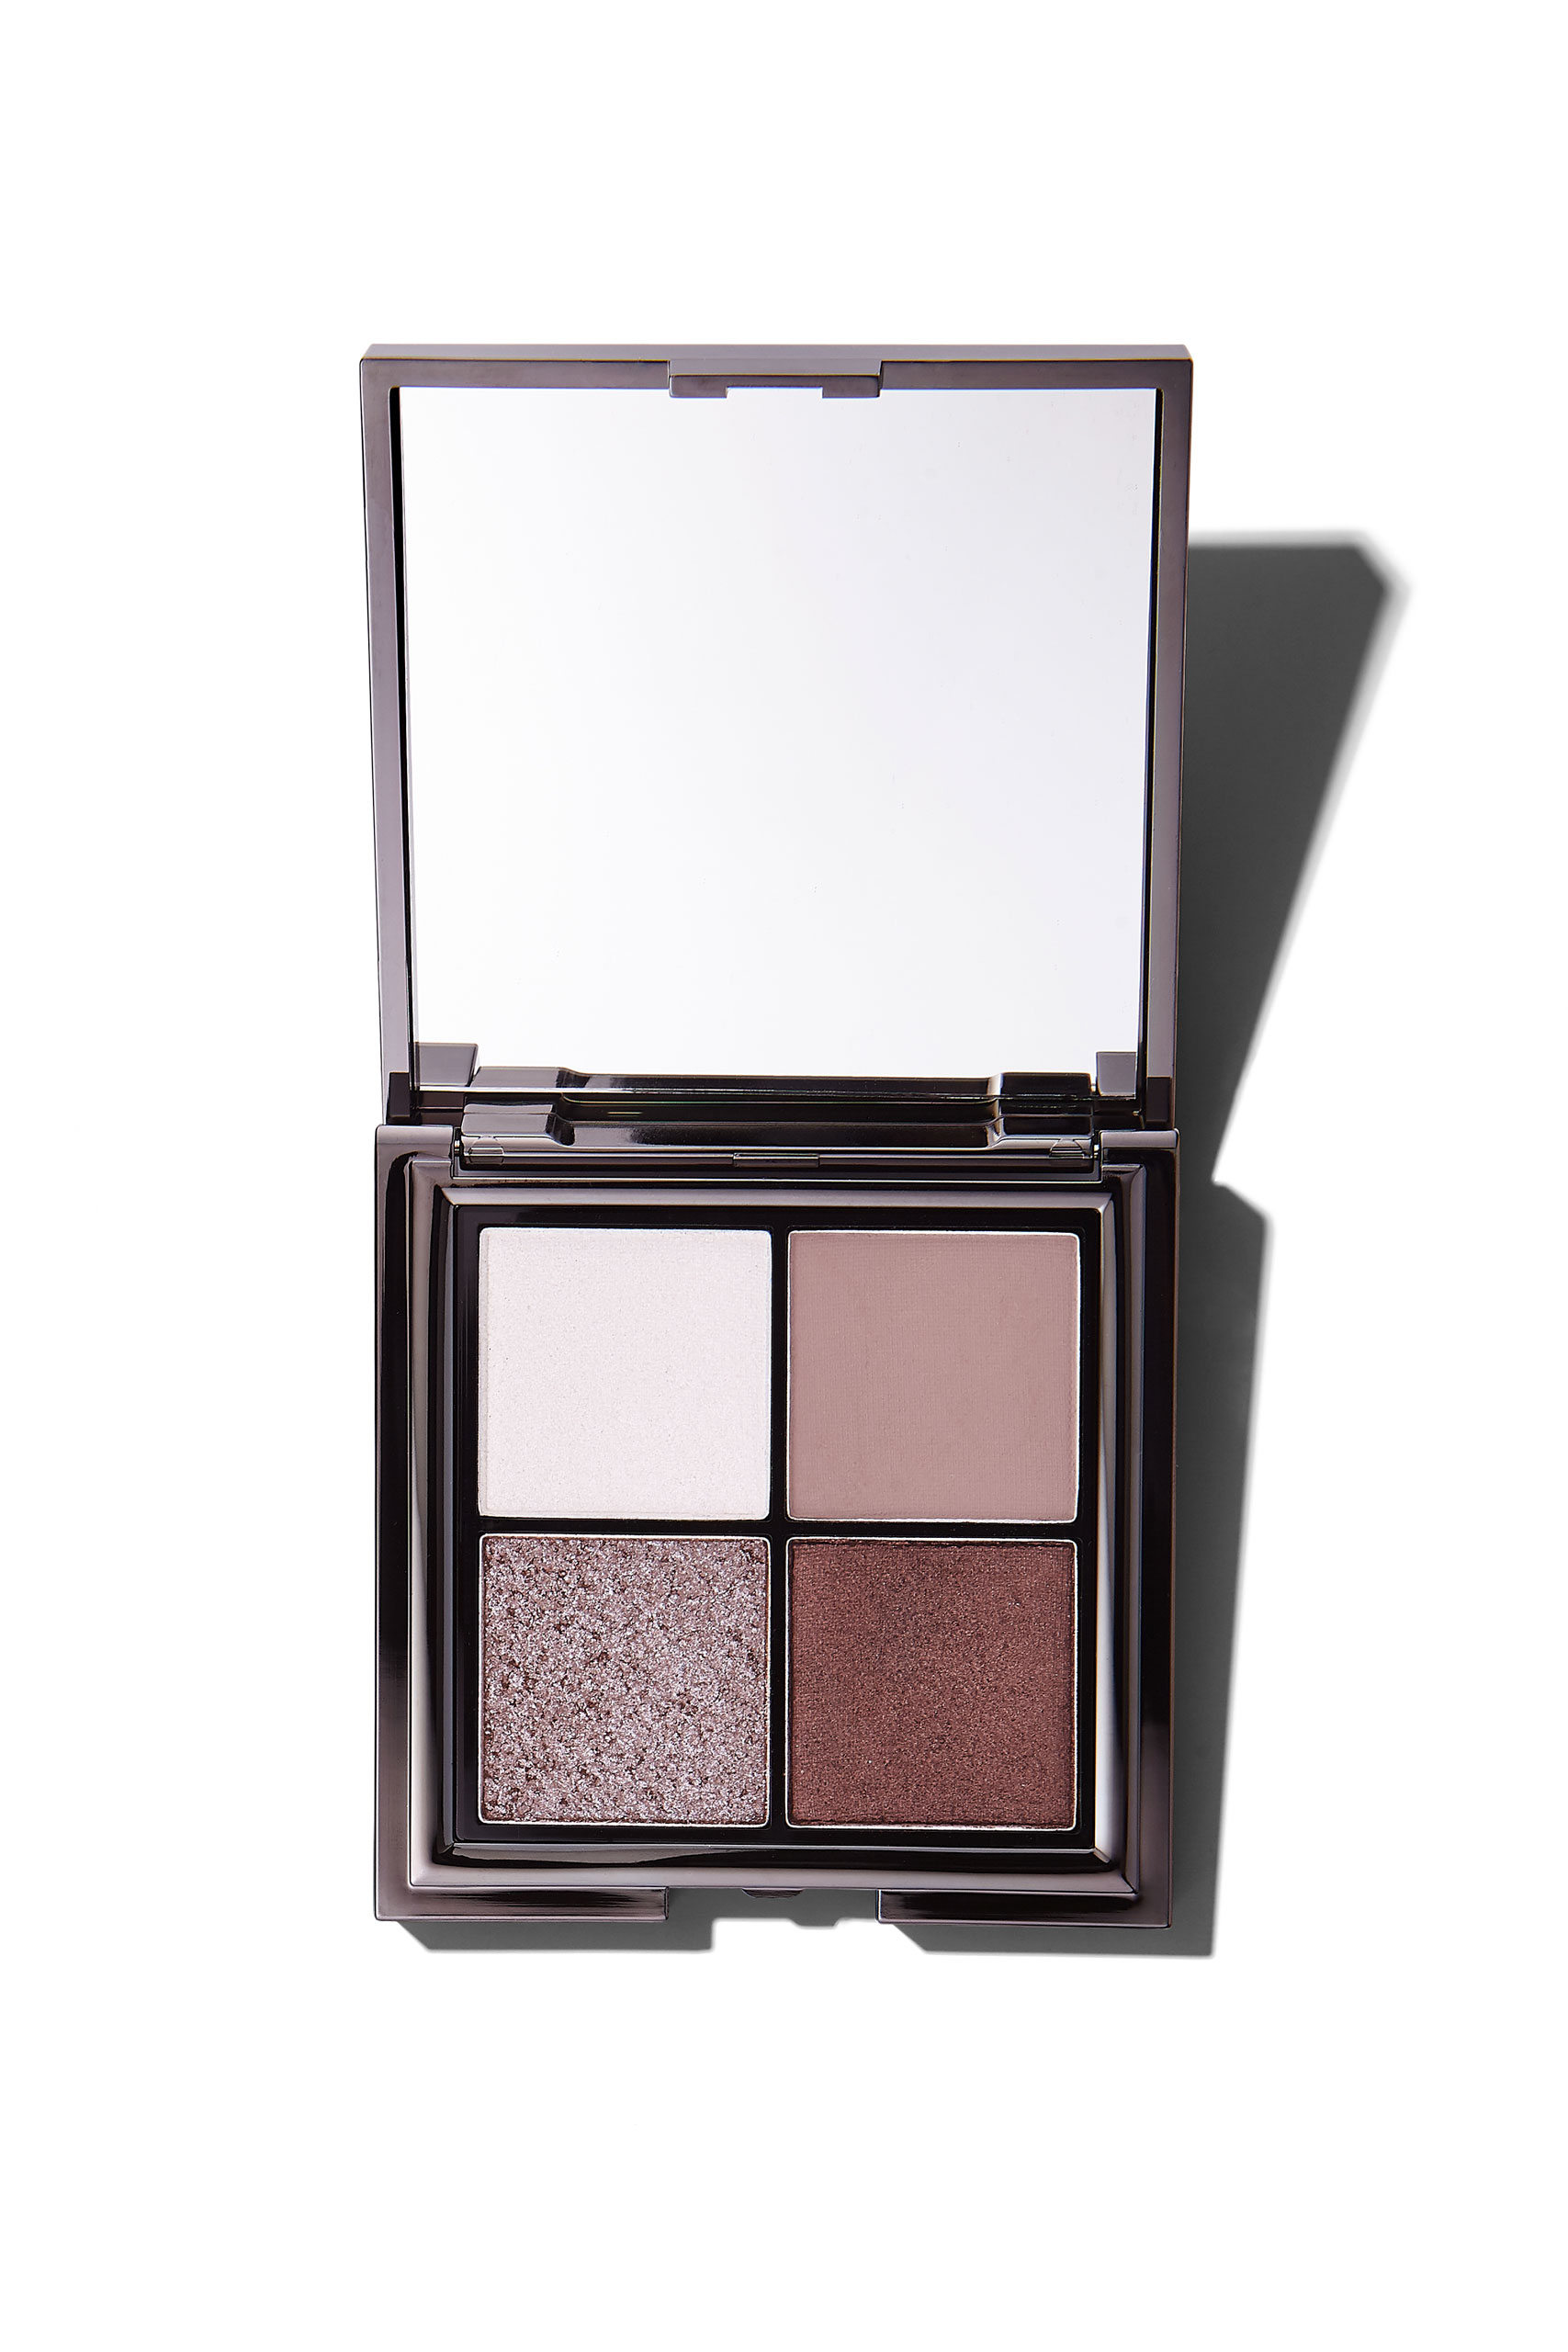 Annbeauty For Him Eyeshadow Palette